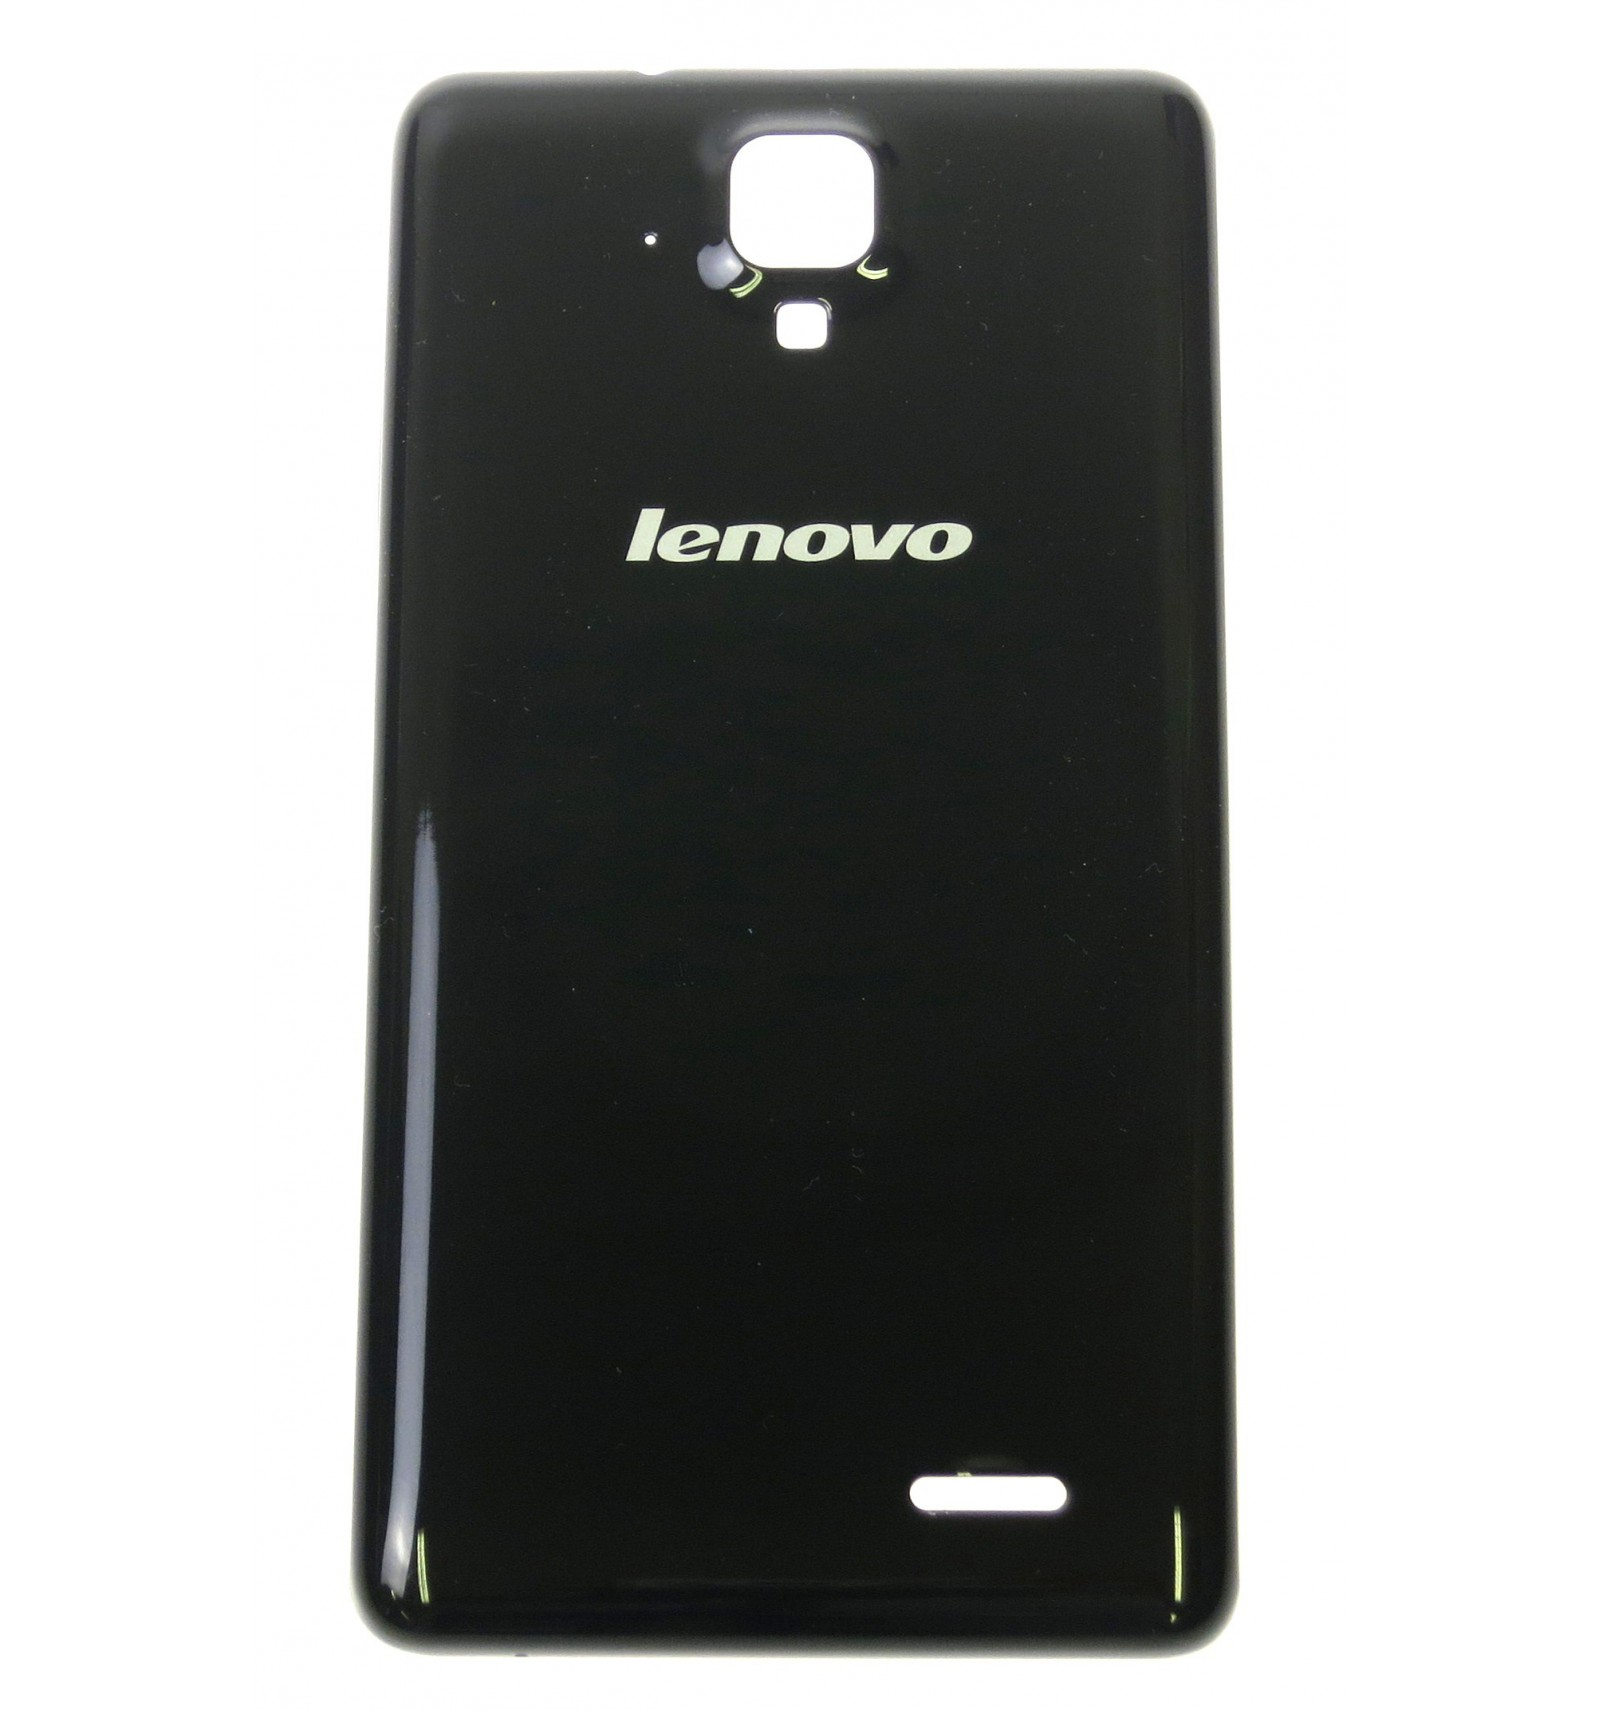 the best attitude 15676 d9a8f Battery cover black replacement for Lenovo A536 | lcdpartner.com